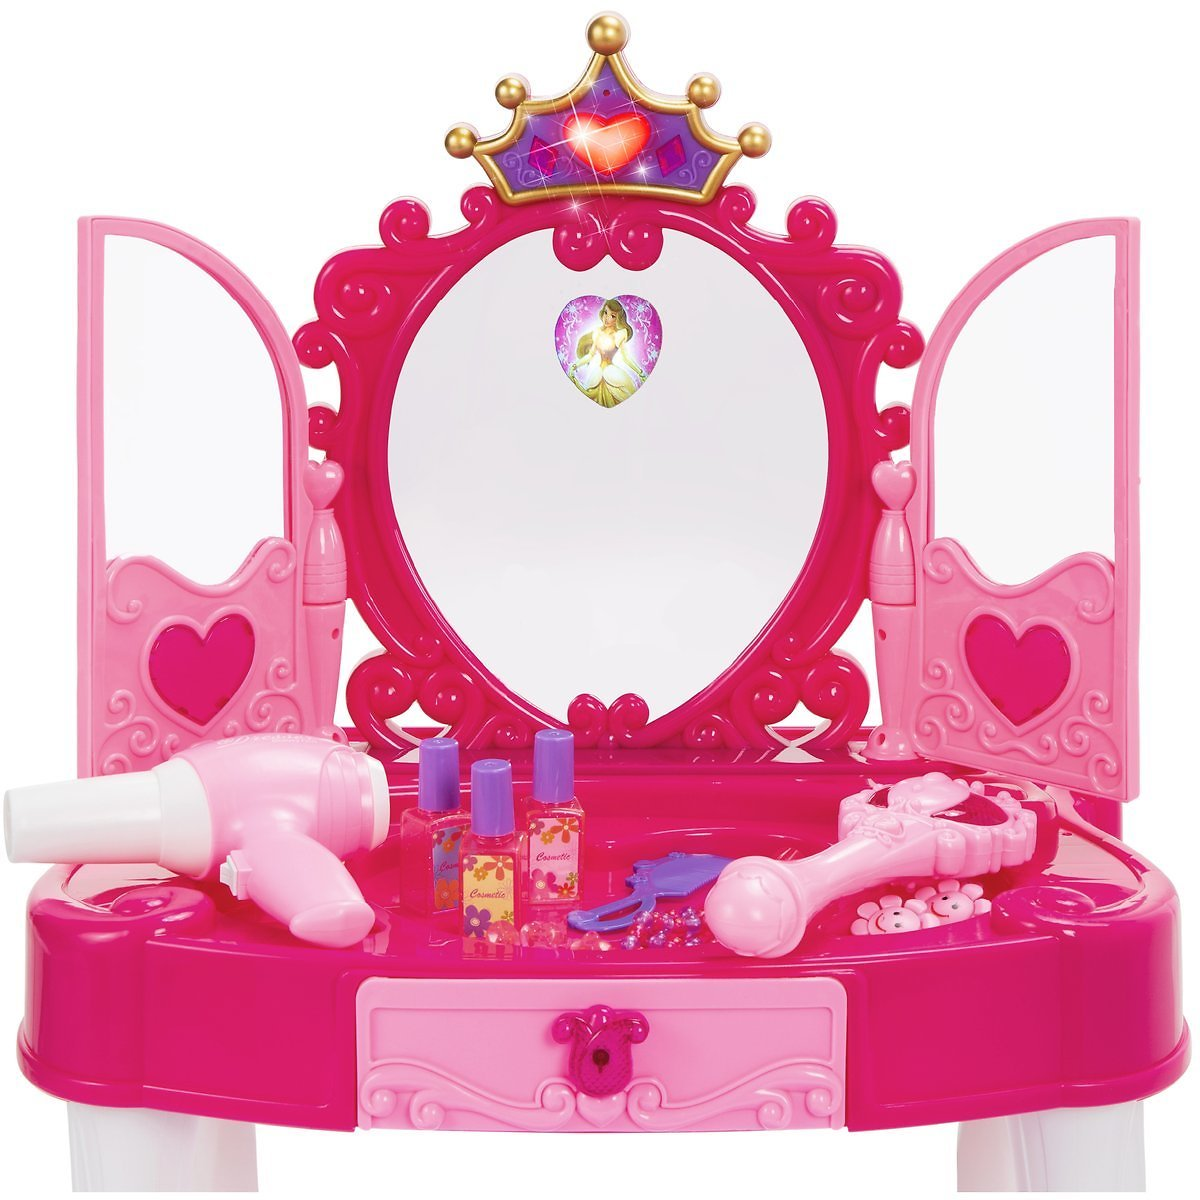 Kids Princess Vanity Mirror w/ AUX Cable, Wand, Hairdryer, Accessories